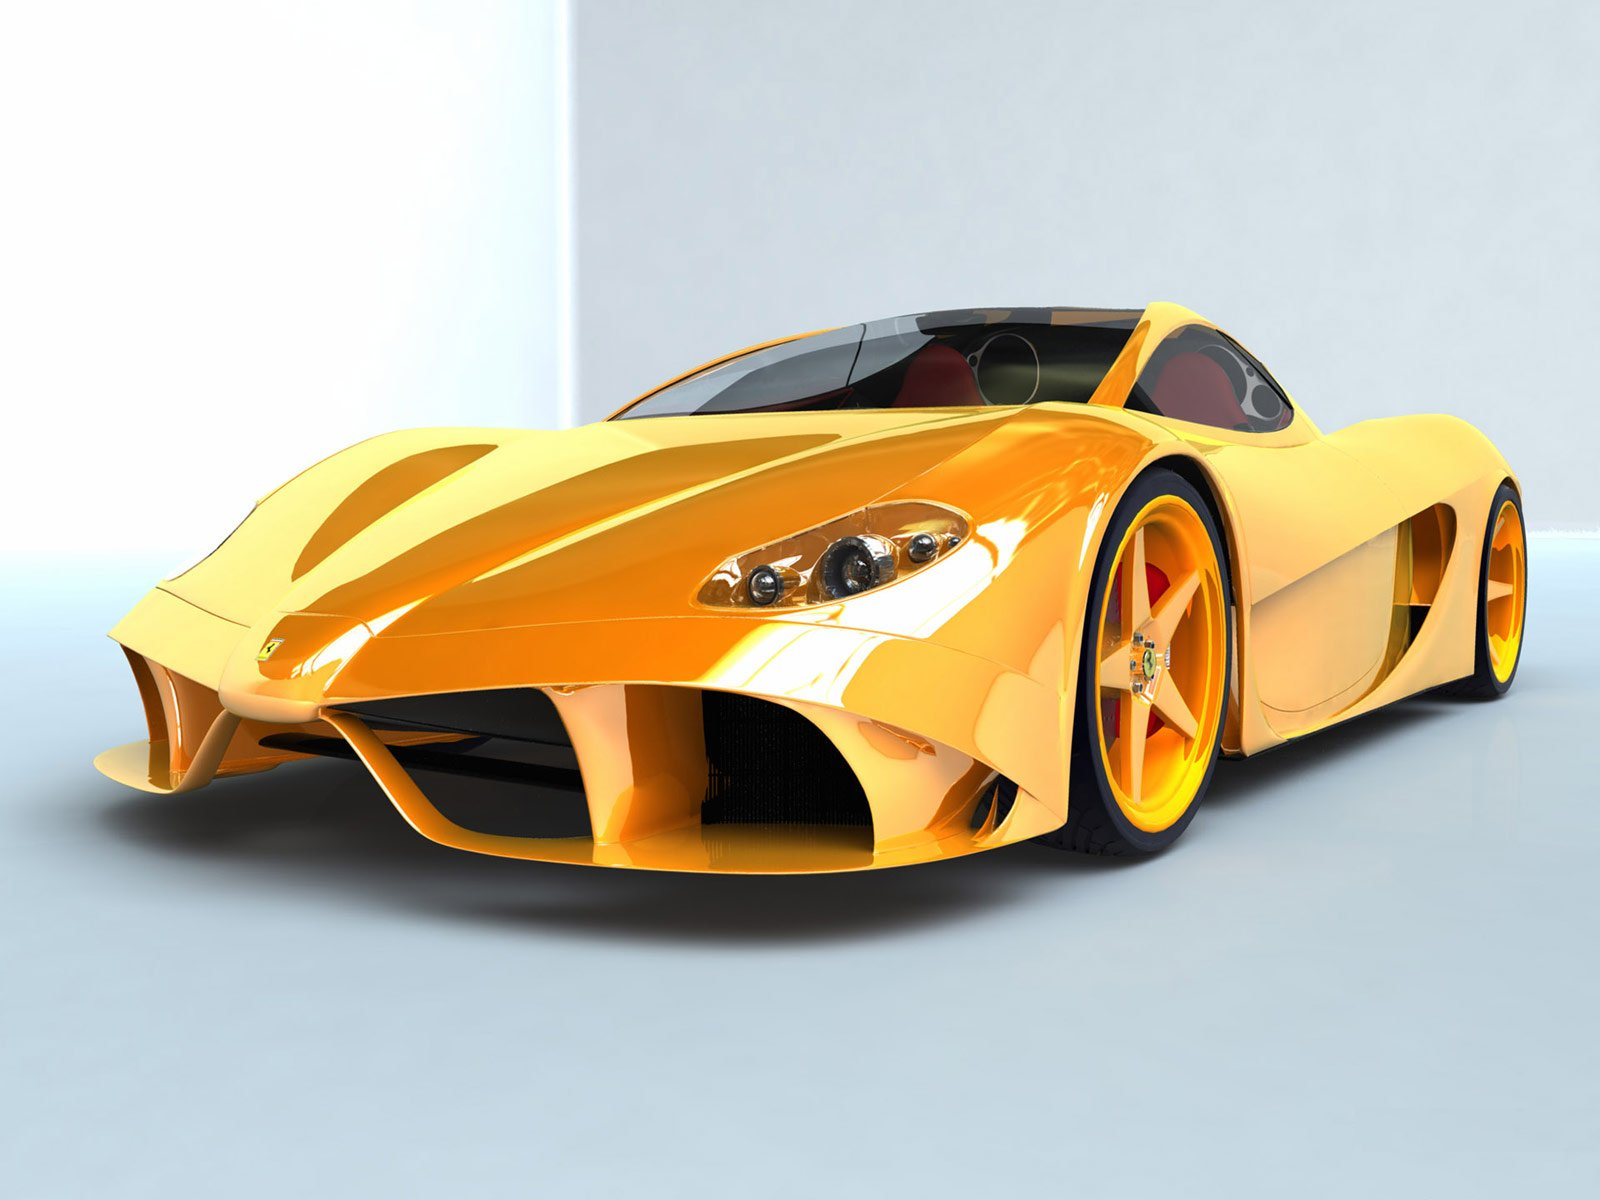 New cool cars wallpapers online auto book for New cool images